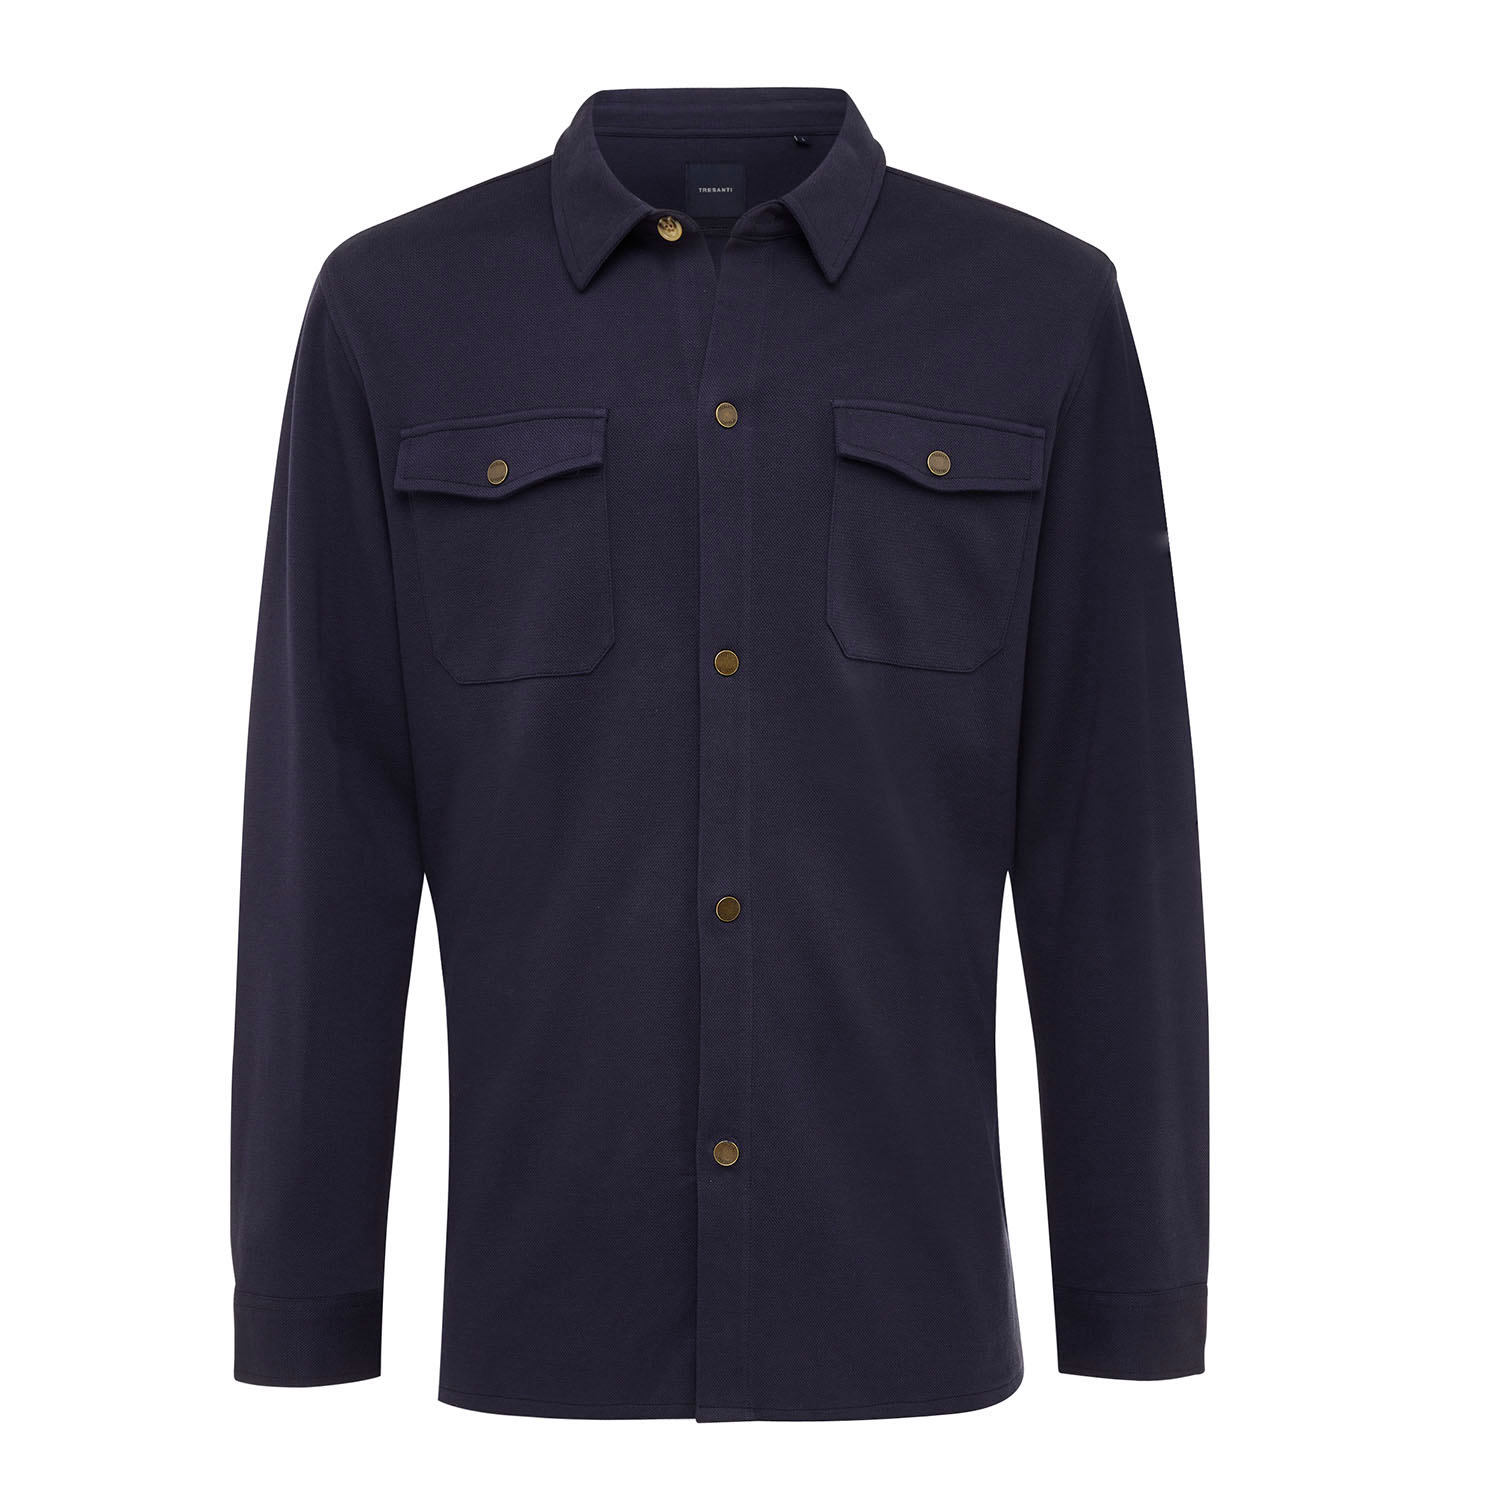 ELEVEN | Jersey overshirt with button closure navy